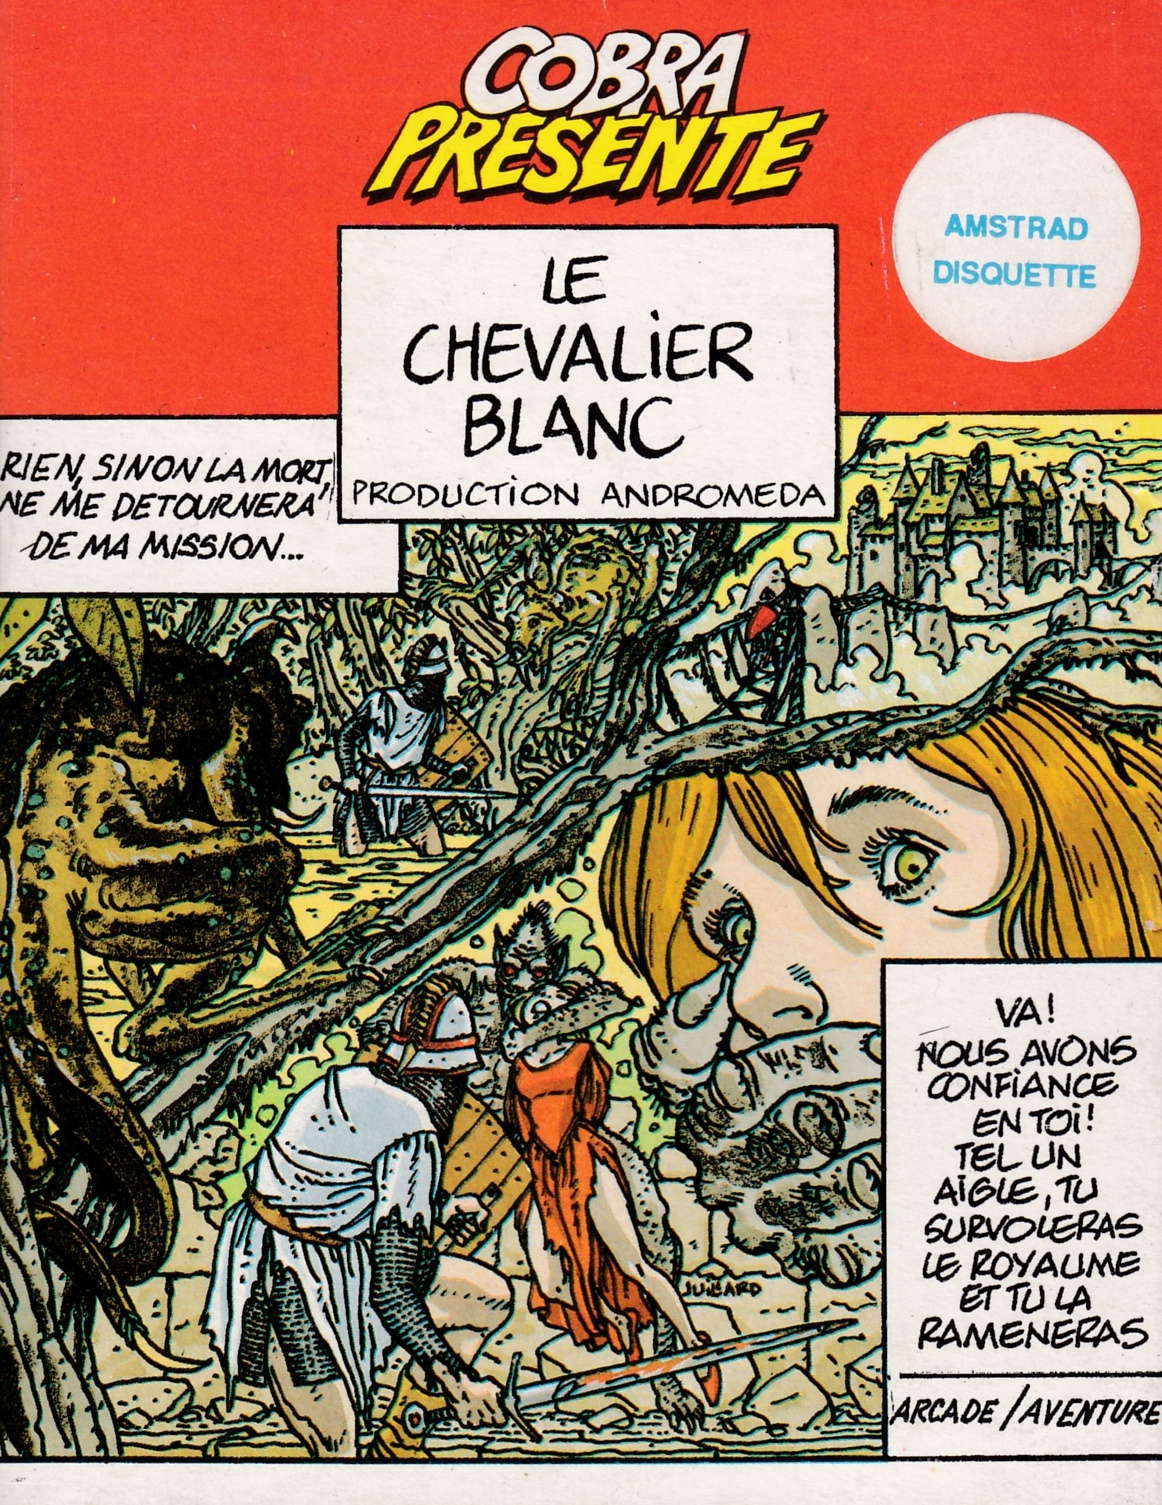 screenshot of the Amstrad CPC game Chevalier blanc (le) by GameBase CPC